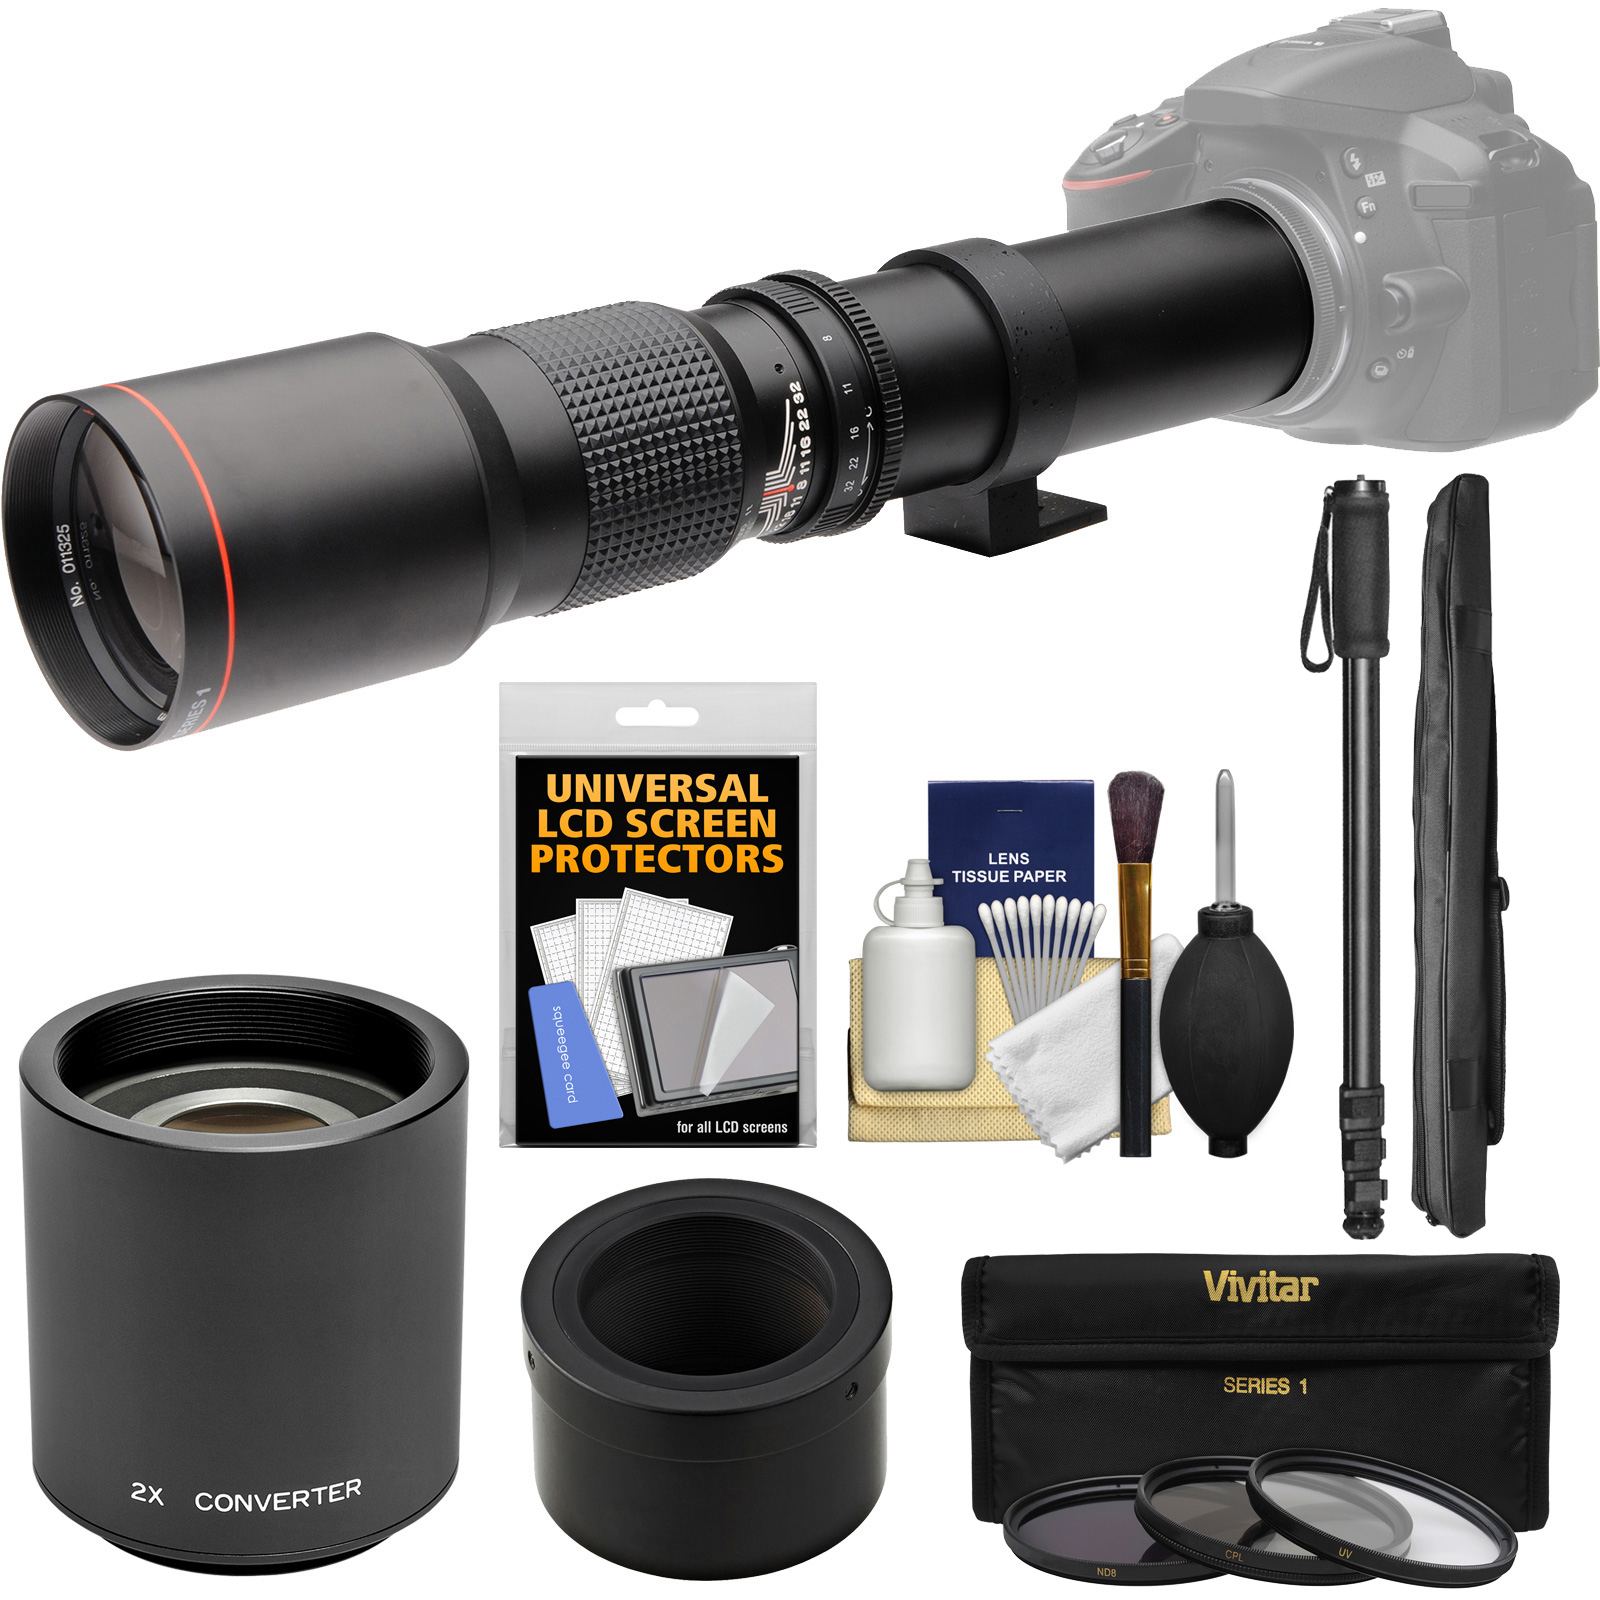 Vivitar 500mm f/8.0 Telephoto Lens with 2x Teleconverter (=1000mm) + Monopod + 3 Filters Kit for Nikon 1 J1, J2, J3, J4, S1, V1, V2, V3 Digital Camera